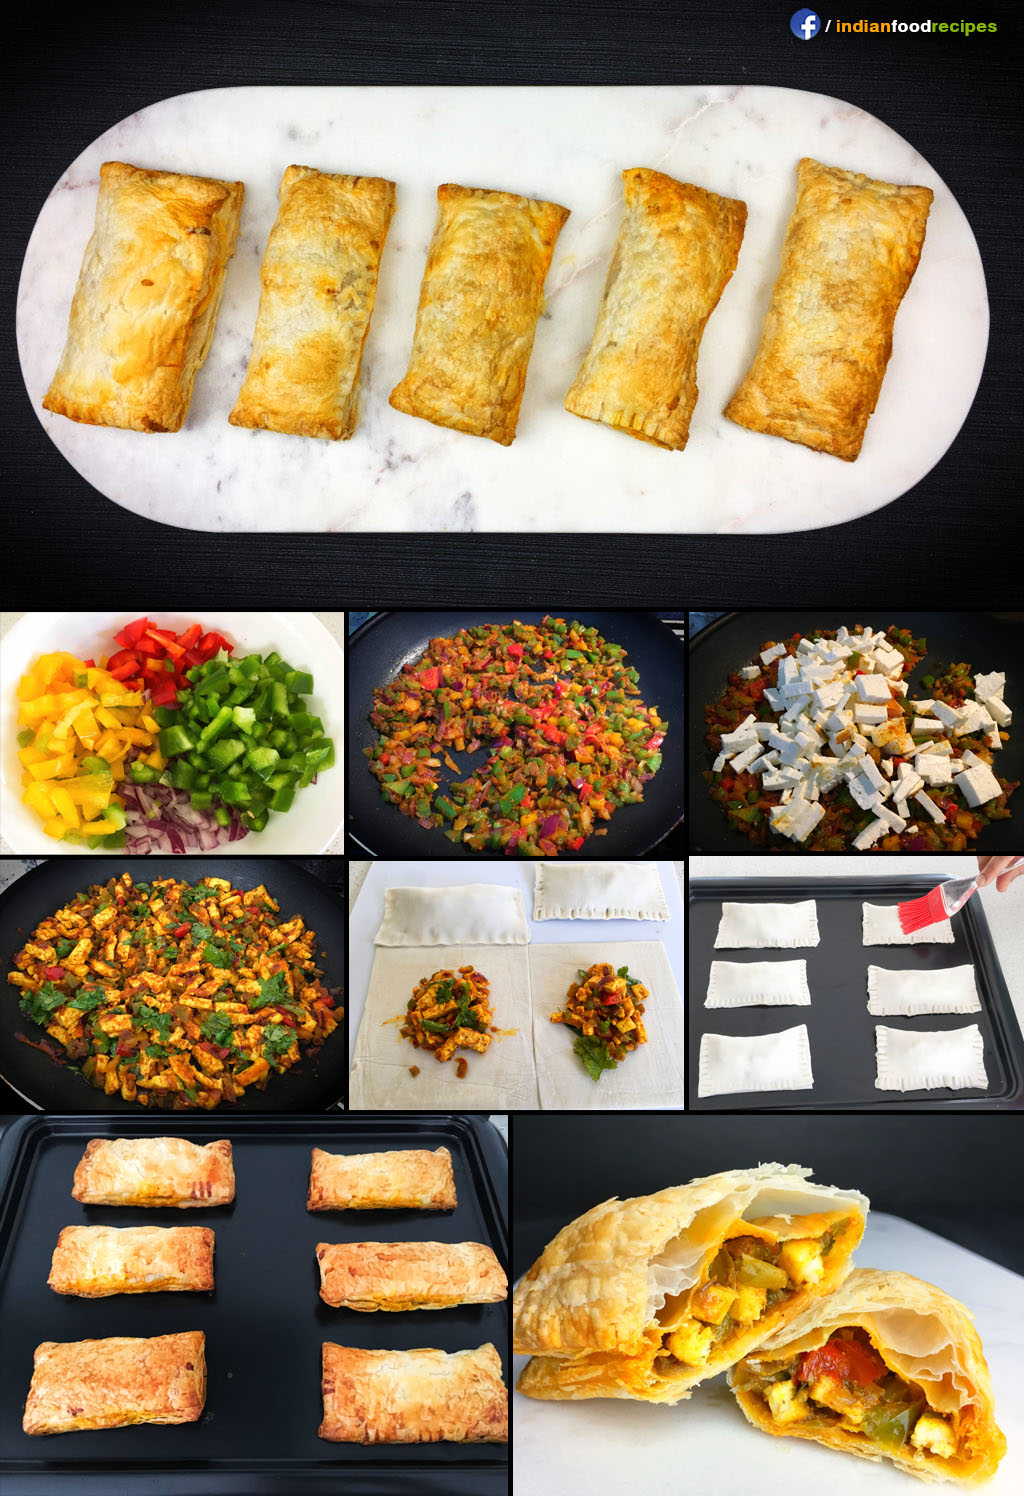 Paneer Puff recipe step by step pictures